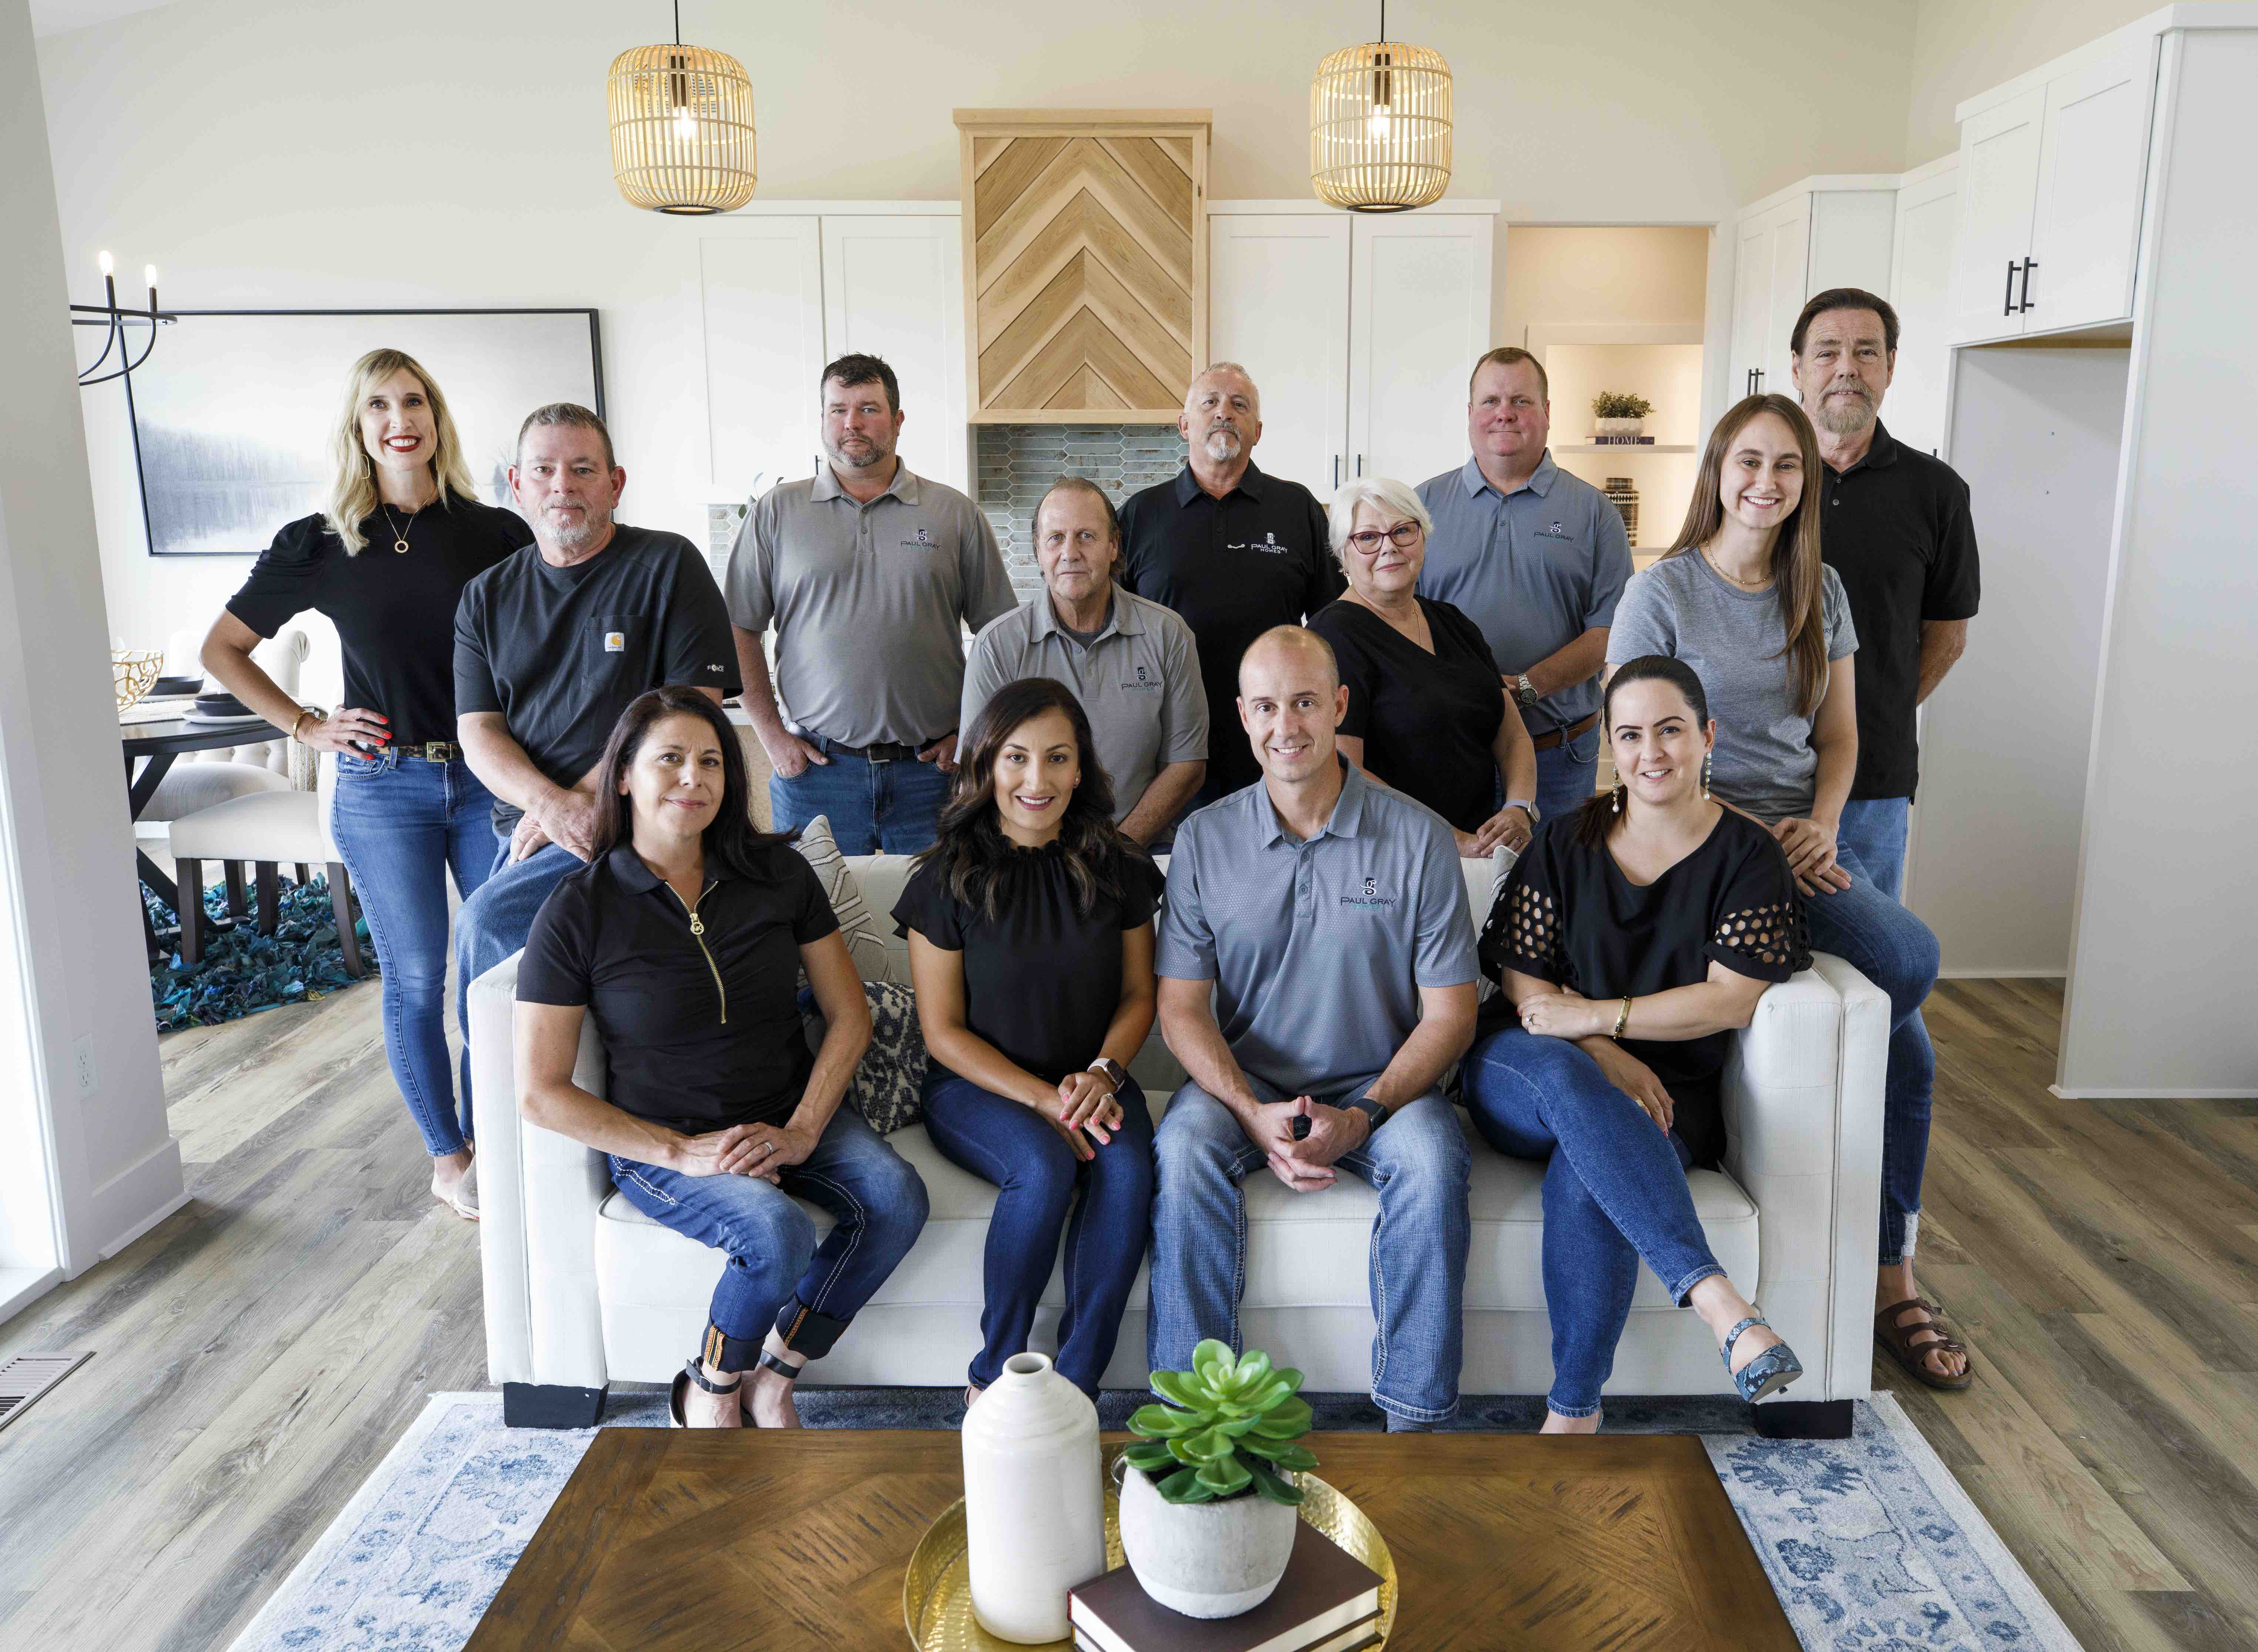 About Paul Gray Homes